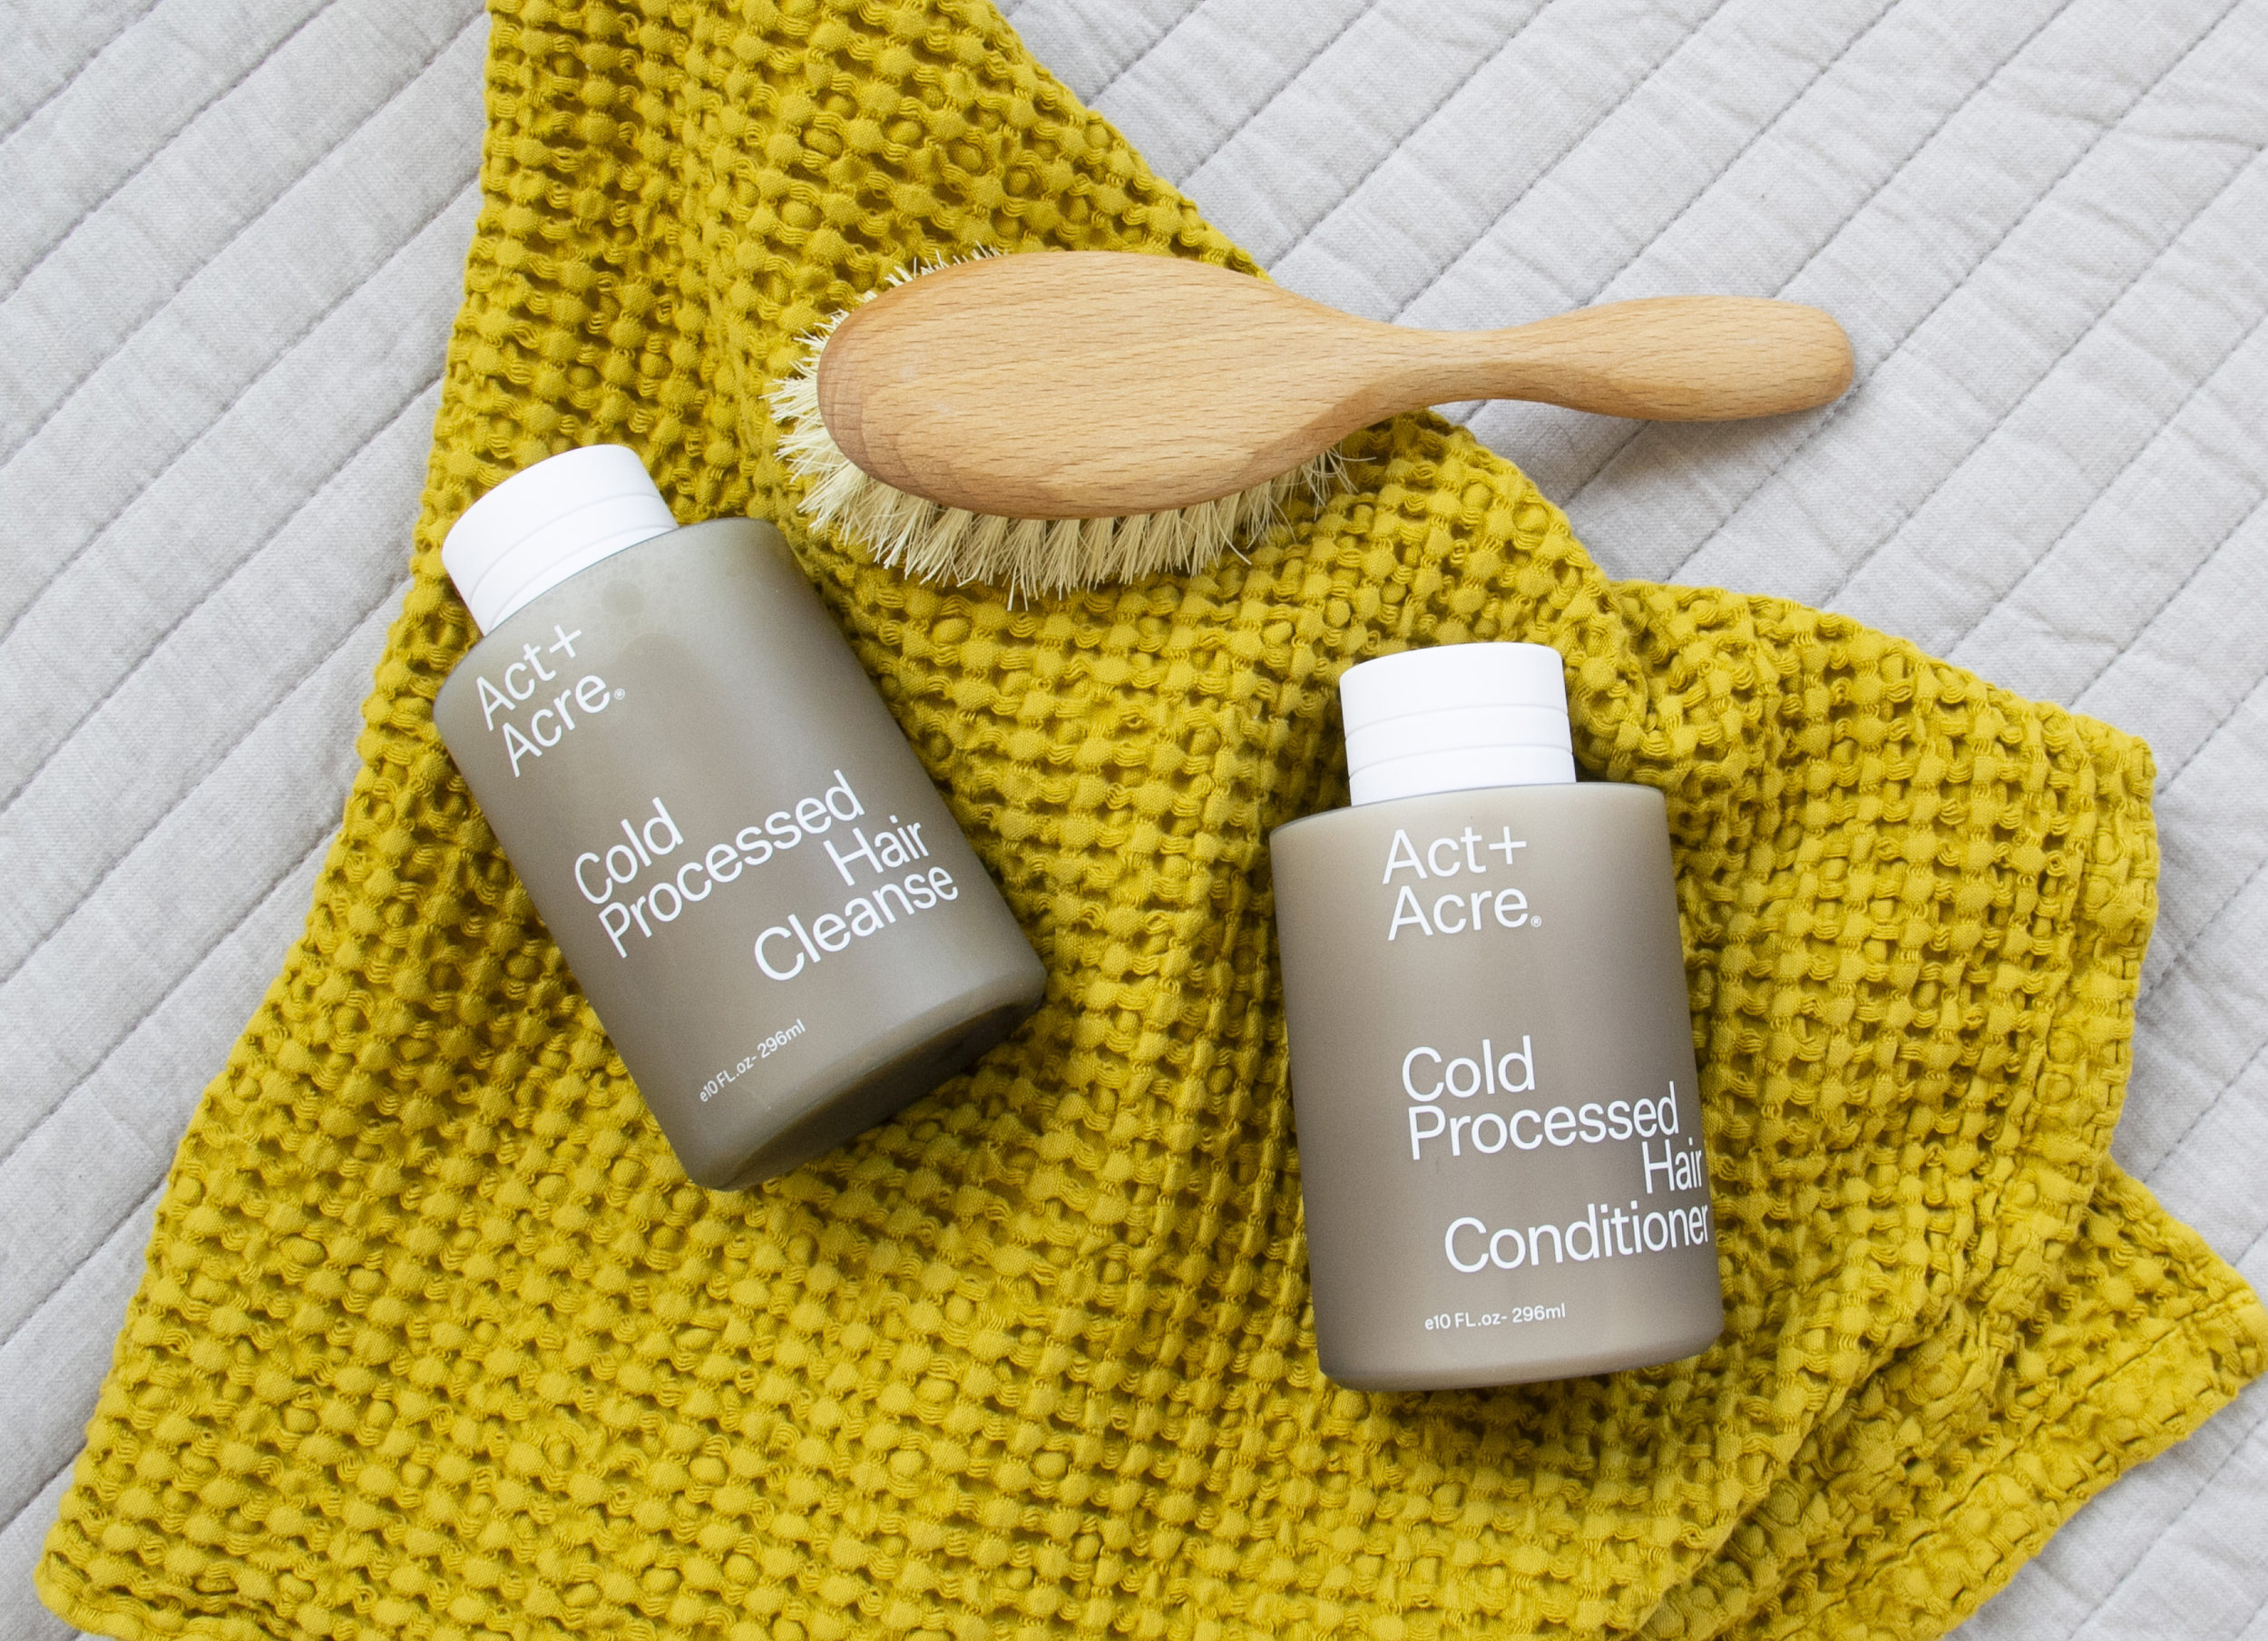 Act + Acre Hair  Cleanse | $28 ,  Hair Conditioner $28